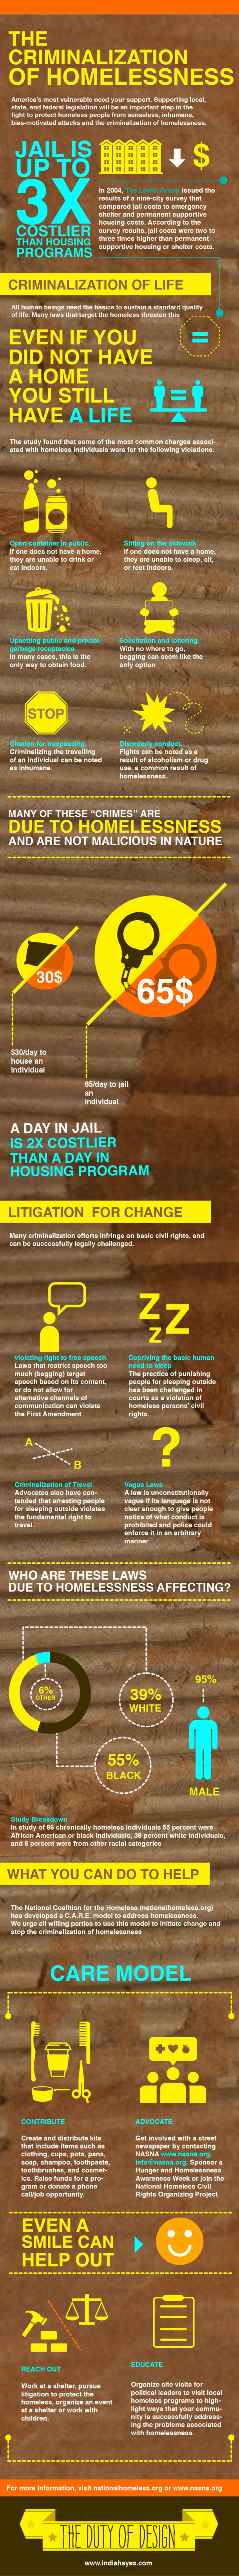 The Criminalization of Homelessness [INFOGRAPHIC]